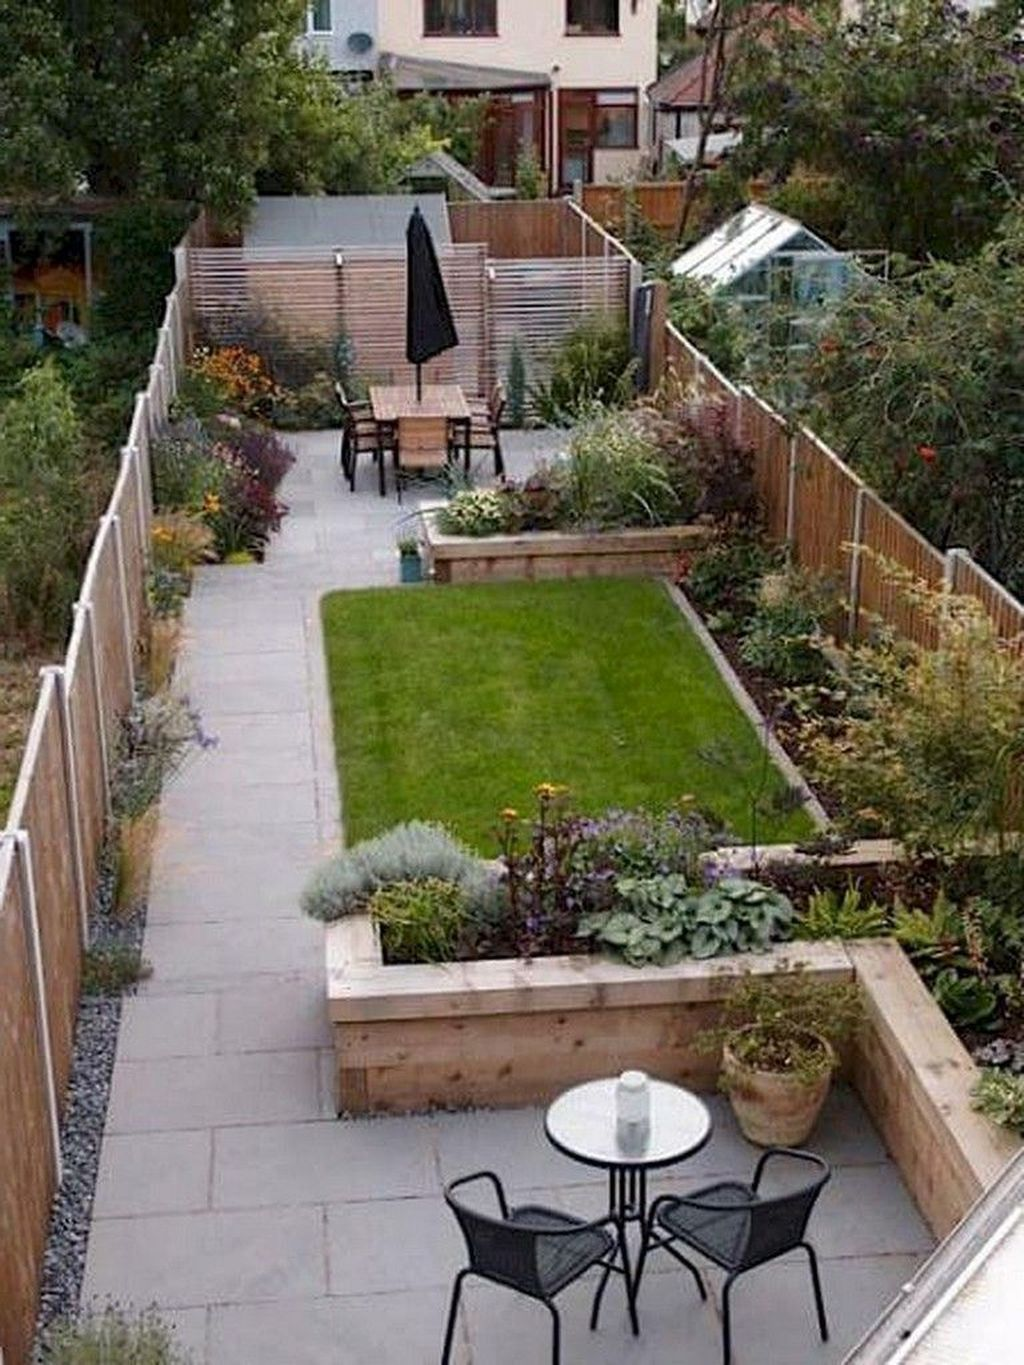 40 gorgeous small backyard landscaping ideas page 8 of on gorgeous small backyard landscaping ideas id=19162